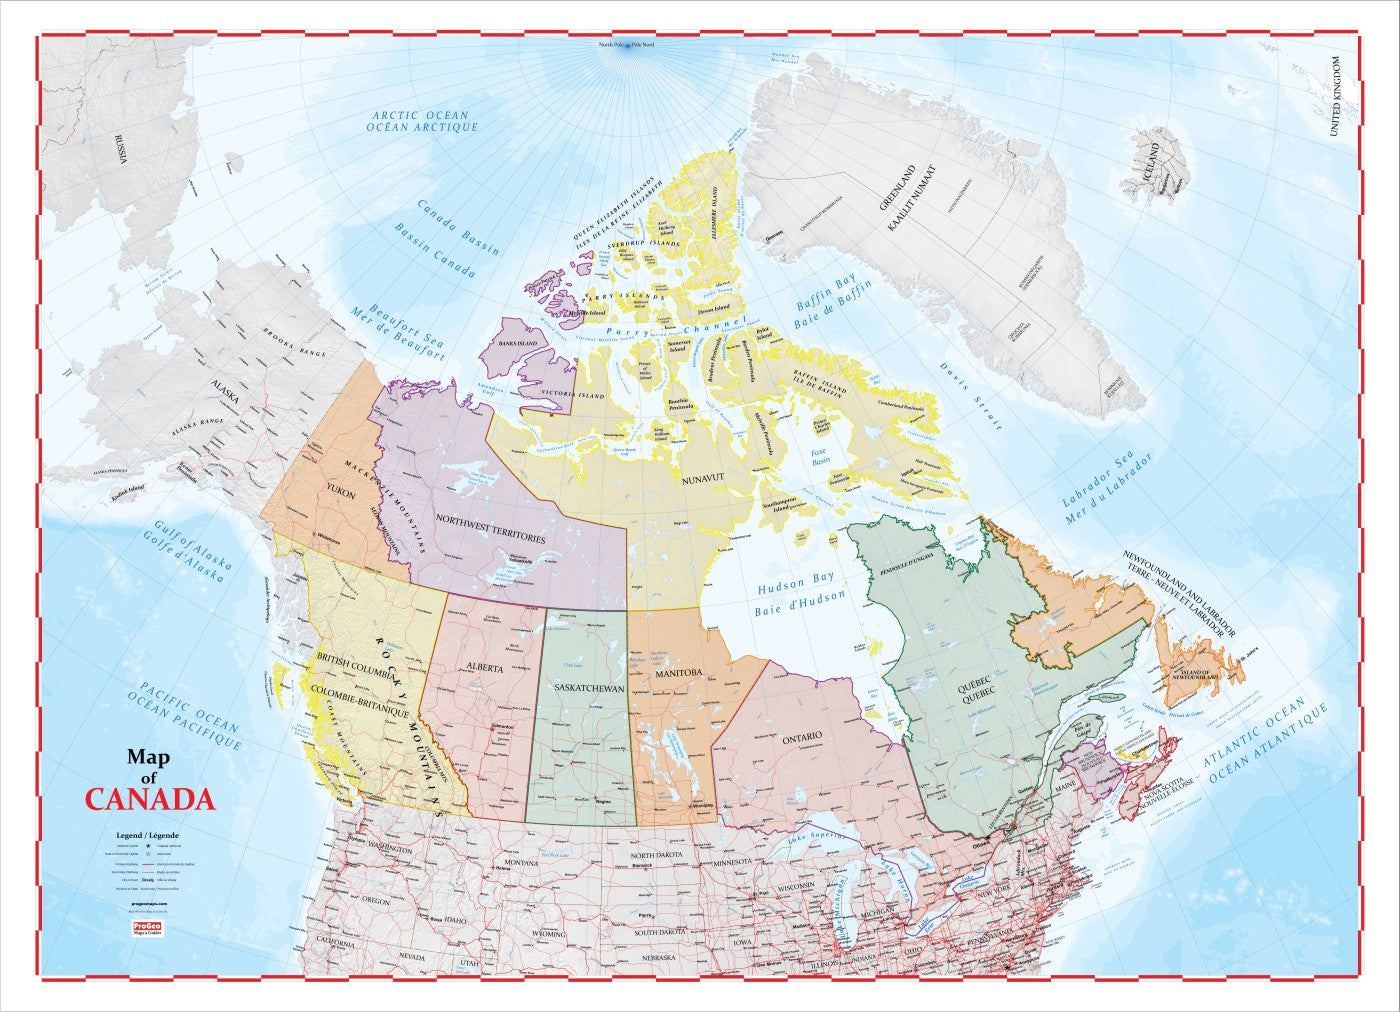 Map of Canada ProGeo Maps 2018 Edition LAMINATED Canada Map Images on africa map, the british isles map, alaska map, china map, canadian shield map, brazil map, europe map, ontario map, canadian provinces map, argentina map, texas map, chile map, portugal map, cyprus map, peru map, bc map, british columbia map, russia map, australia map, time zone map, greece map, czech republic map, dominican republic map, france map, california map, croatia map, usa map, alberta map, ireland map, germany map, quebec map, italy map, united states map, belgium map, united kingdom map, world map, great lakes map,